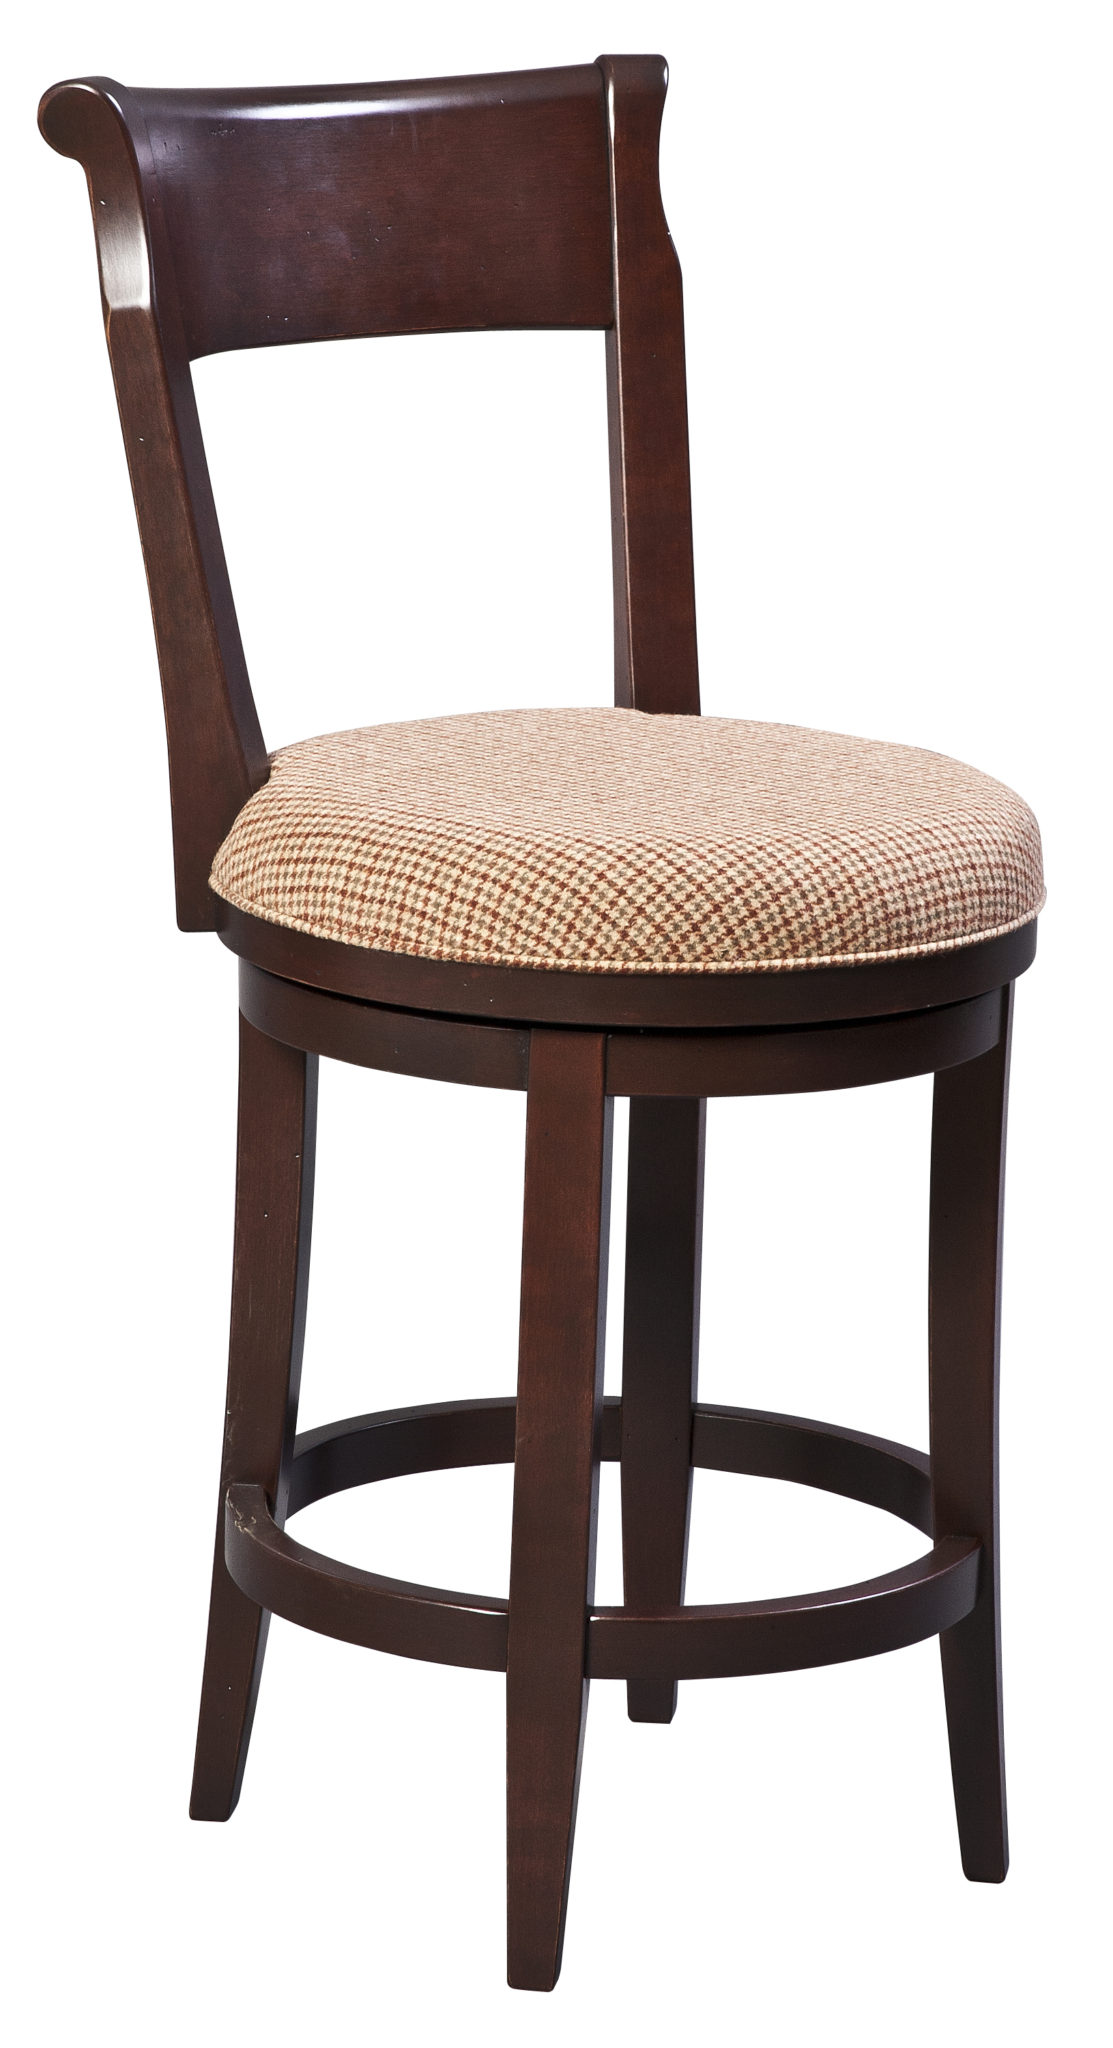 Swivel Mid Town Stool Image